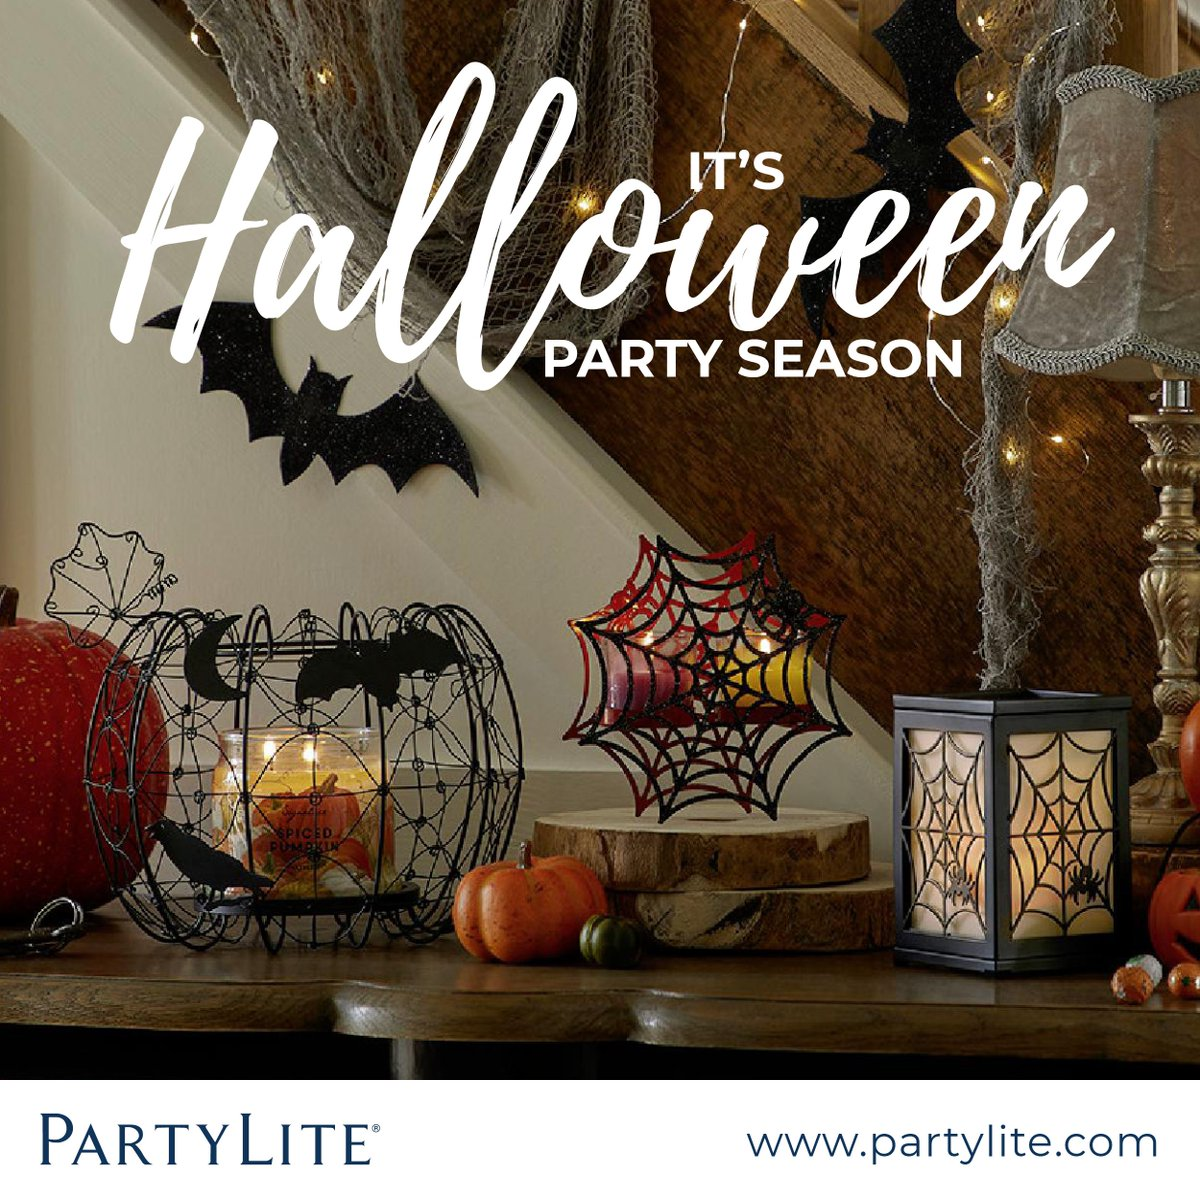 partylite on twitter celebrate the spookiest season of style with our stunning halloween dcor and fragrances the perfect party season accessories